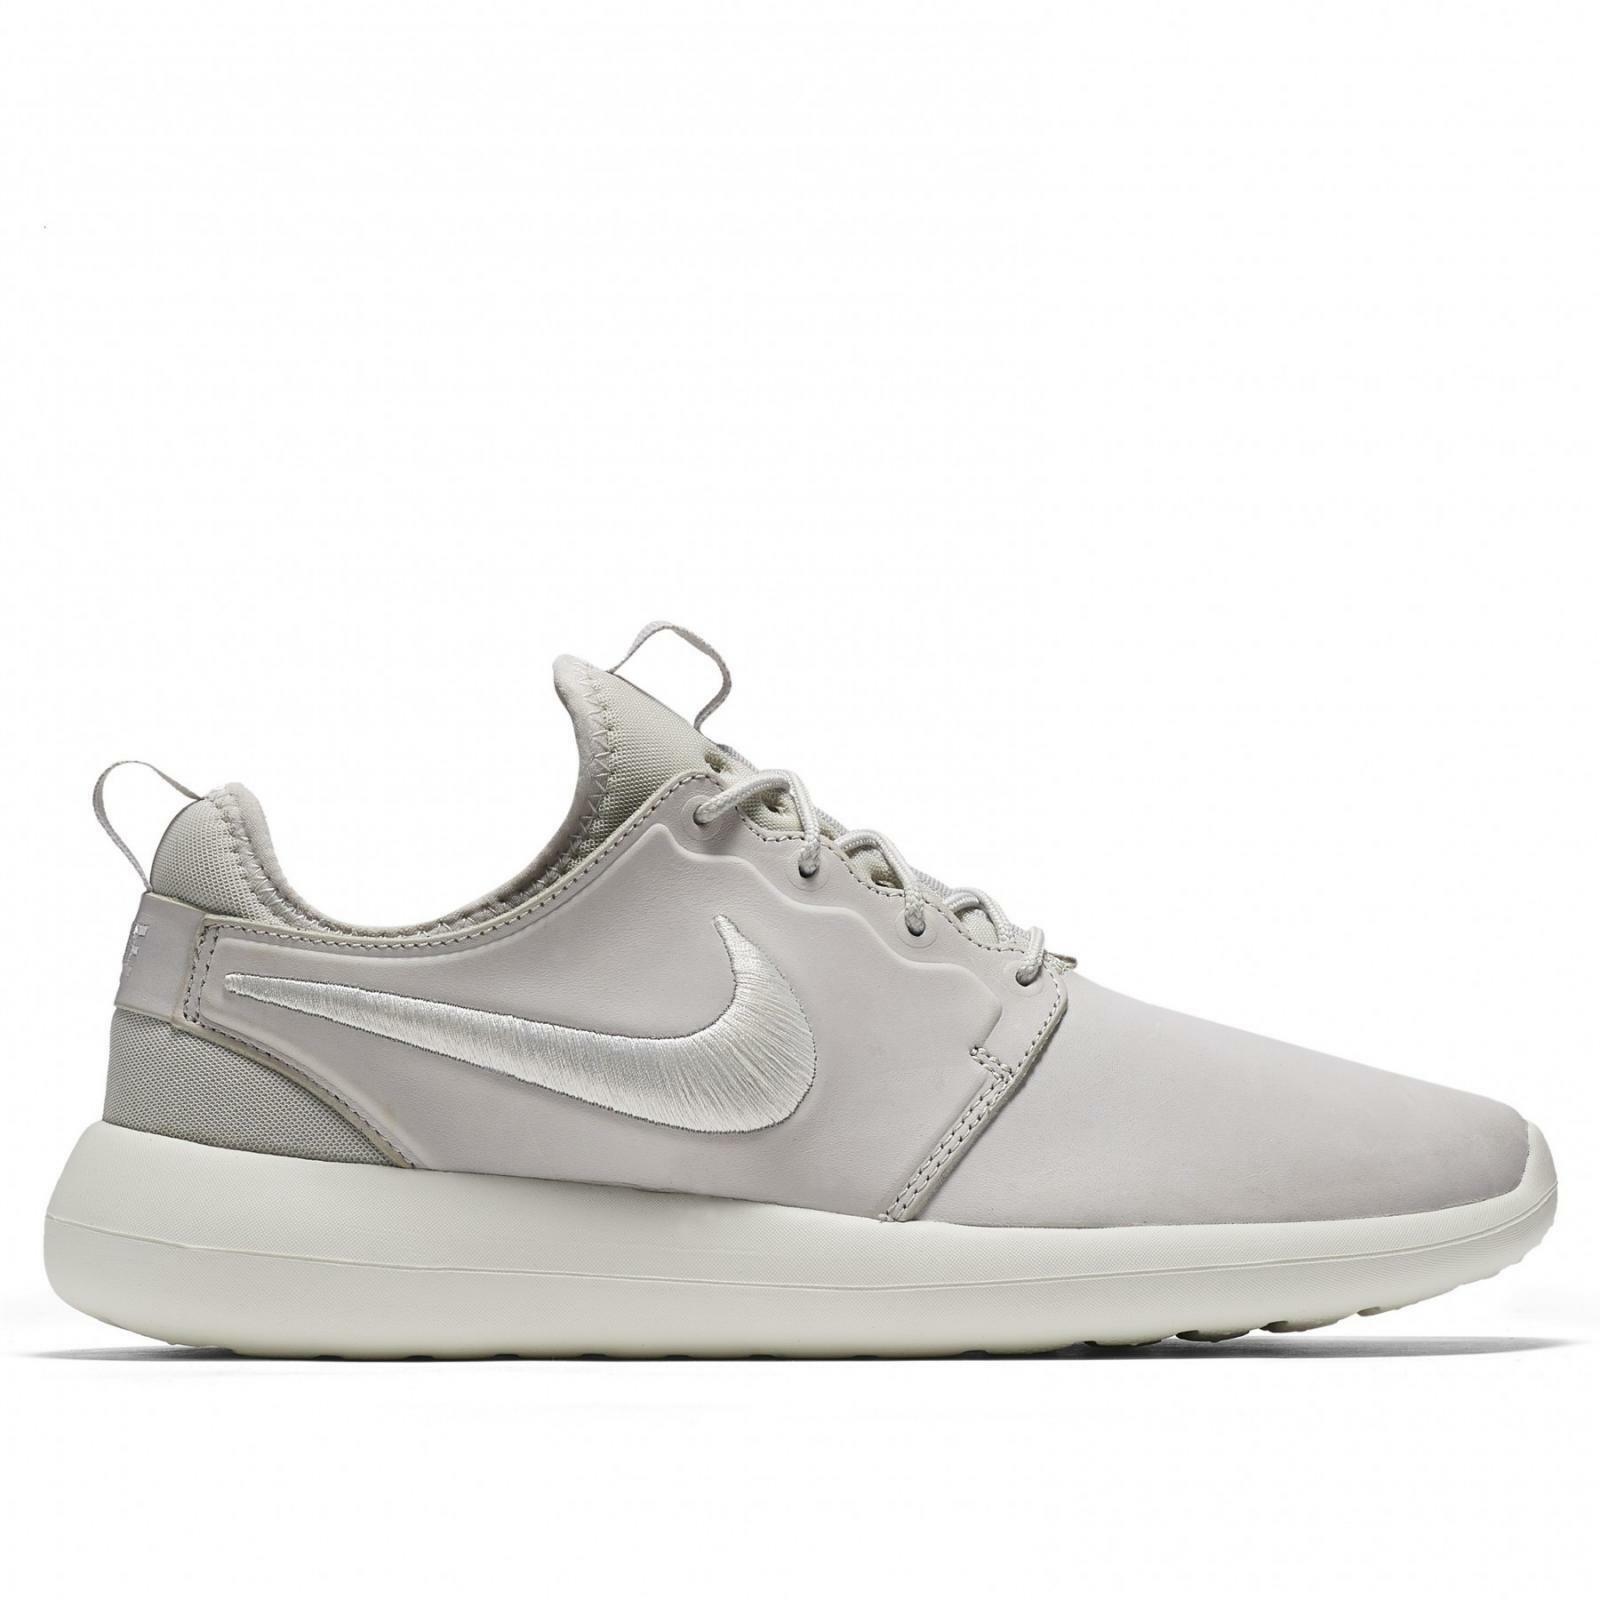 Hommes NIKE NIKELAB ROSHE TWO 100 LEATHER PRM Trainers 876521 100 TWO c100fe